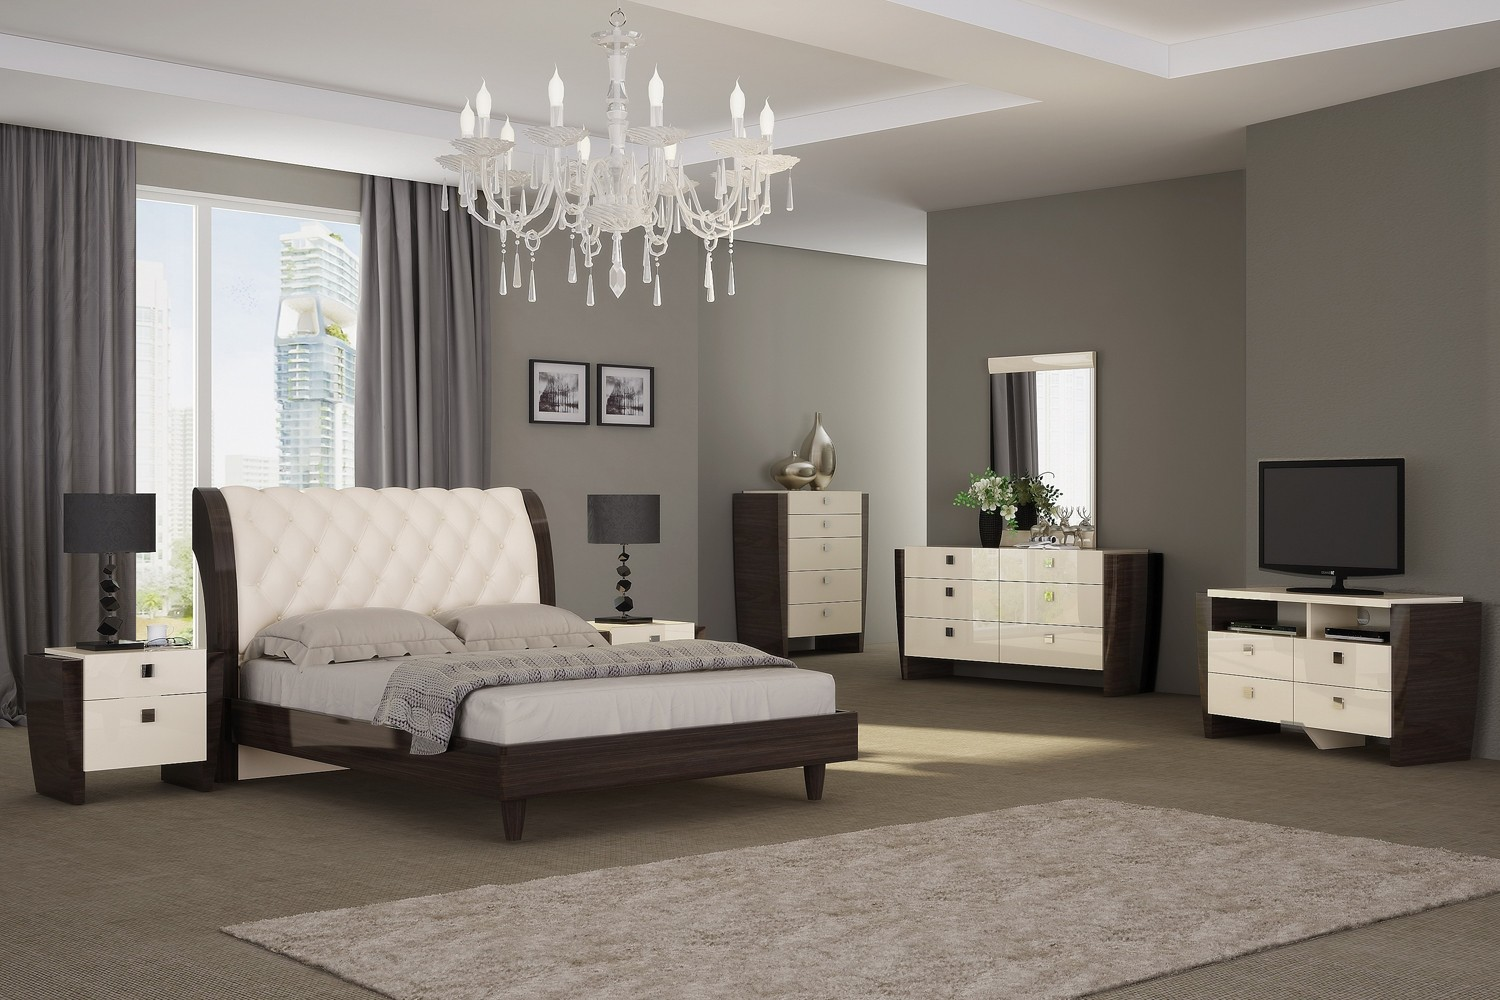 Milano bedroom furniture